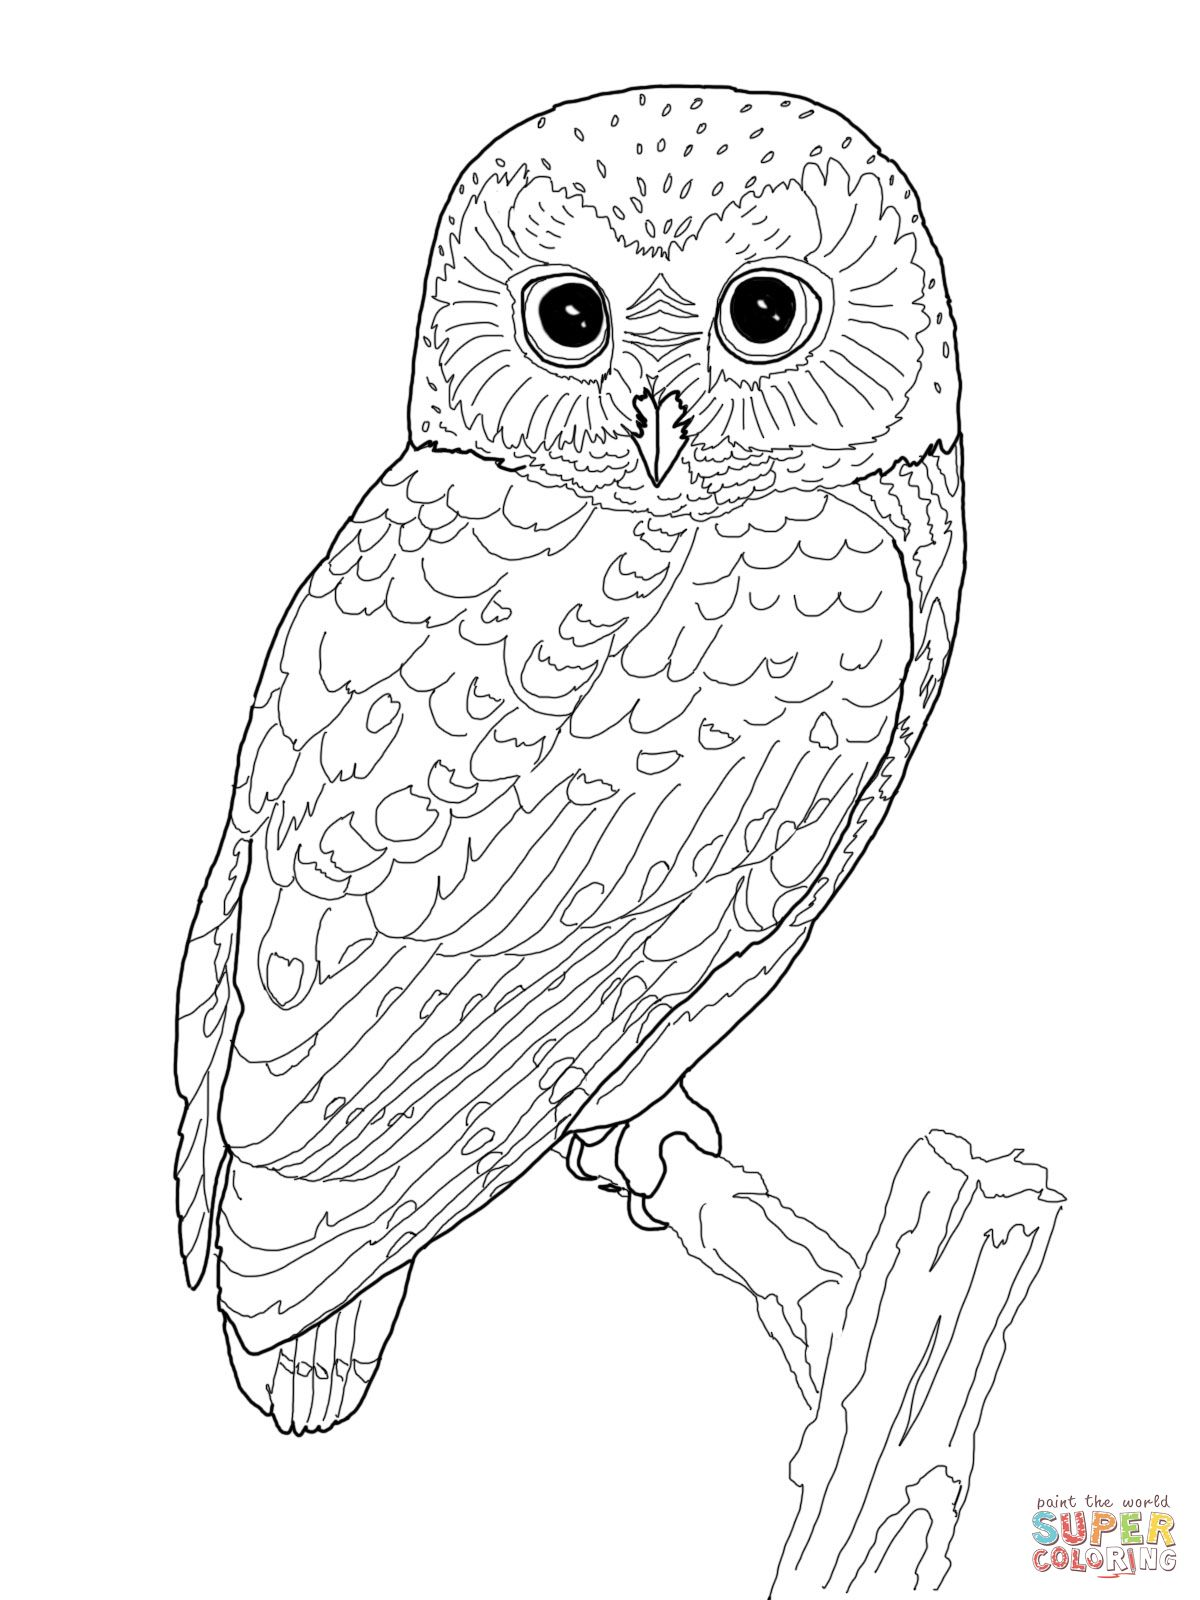 Northern Spotted Owl Coloring Page